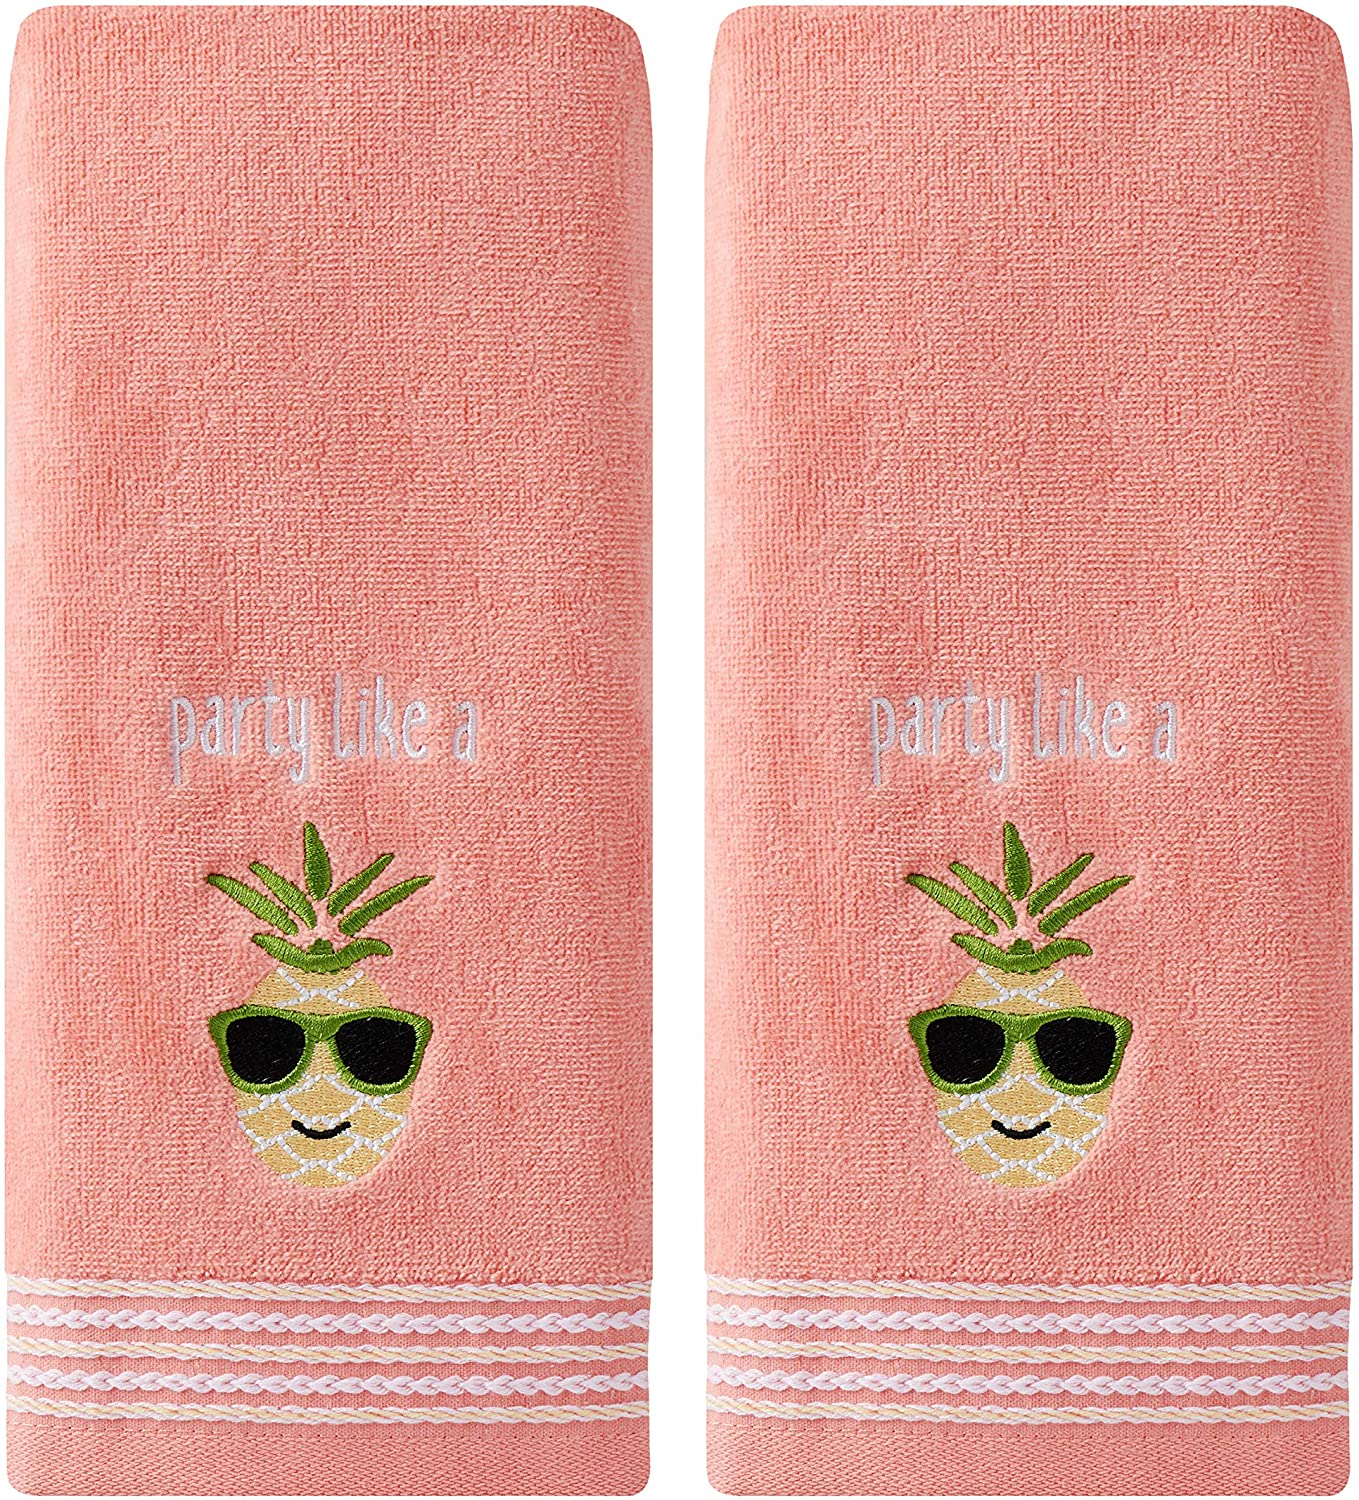 SKL Home by Saturday Knight Ltd. Party Pineapple 2 Pc Hand Towel Set, Coral Pink